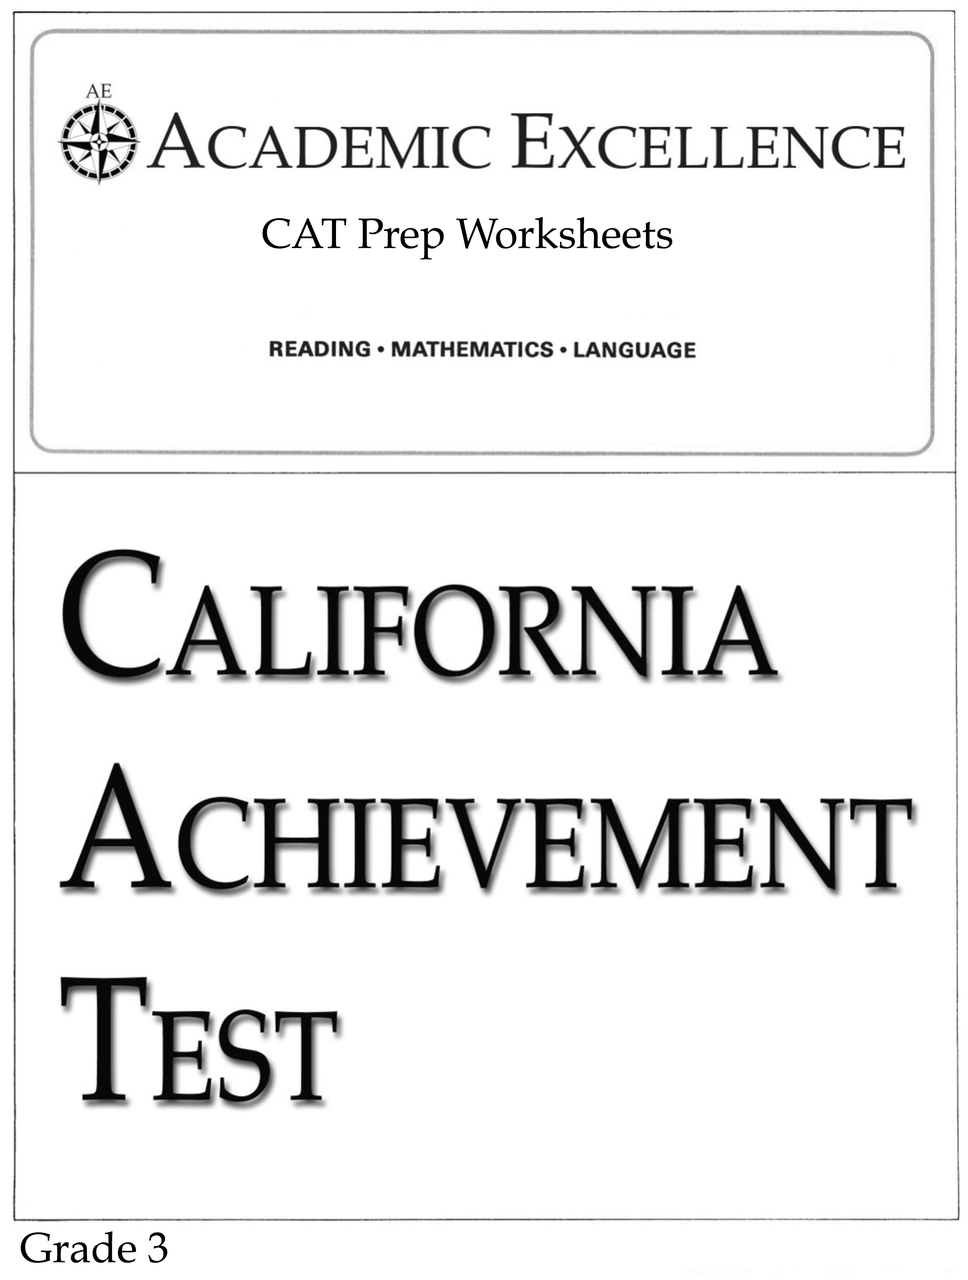 CAT Prep Pack: Grade 3 - PDF Download - Academic Excellence [ 1280 x 968 Pixel ]